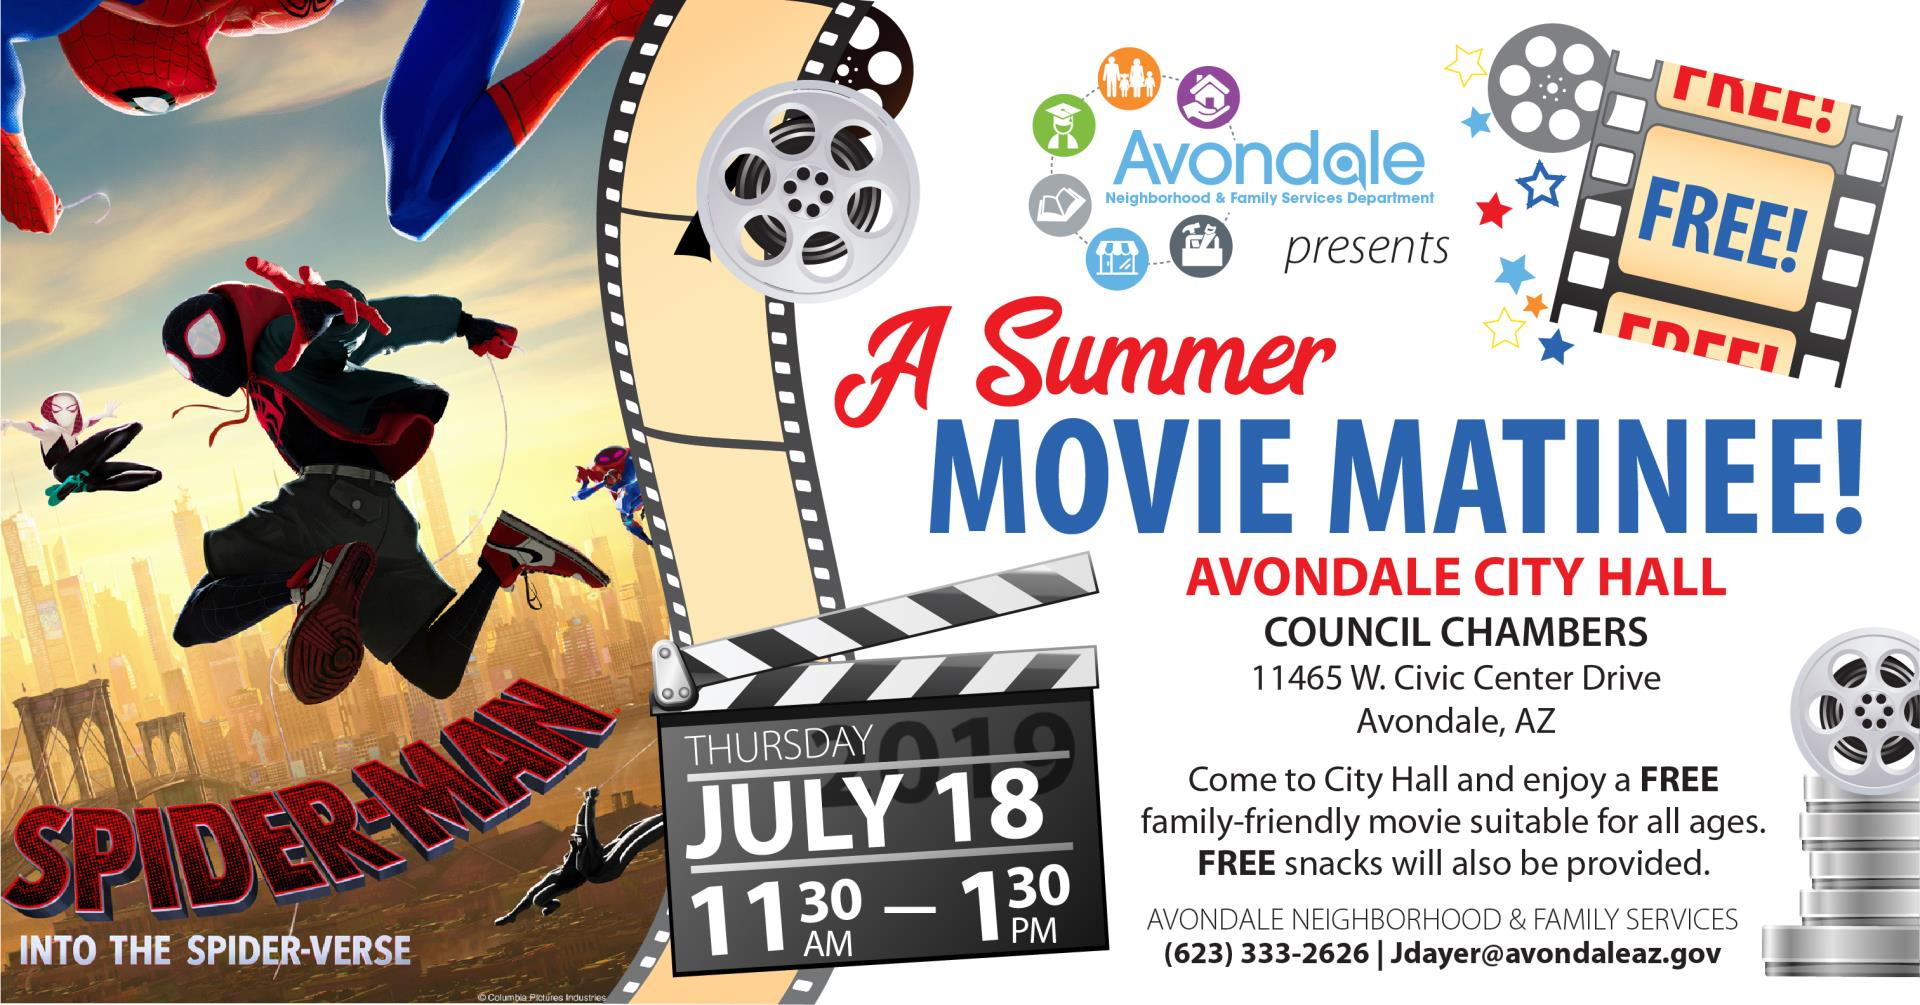 Summer Movies at City Hall - Spiderman into the Spider-verse